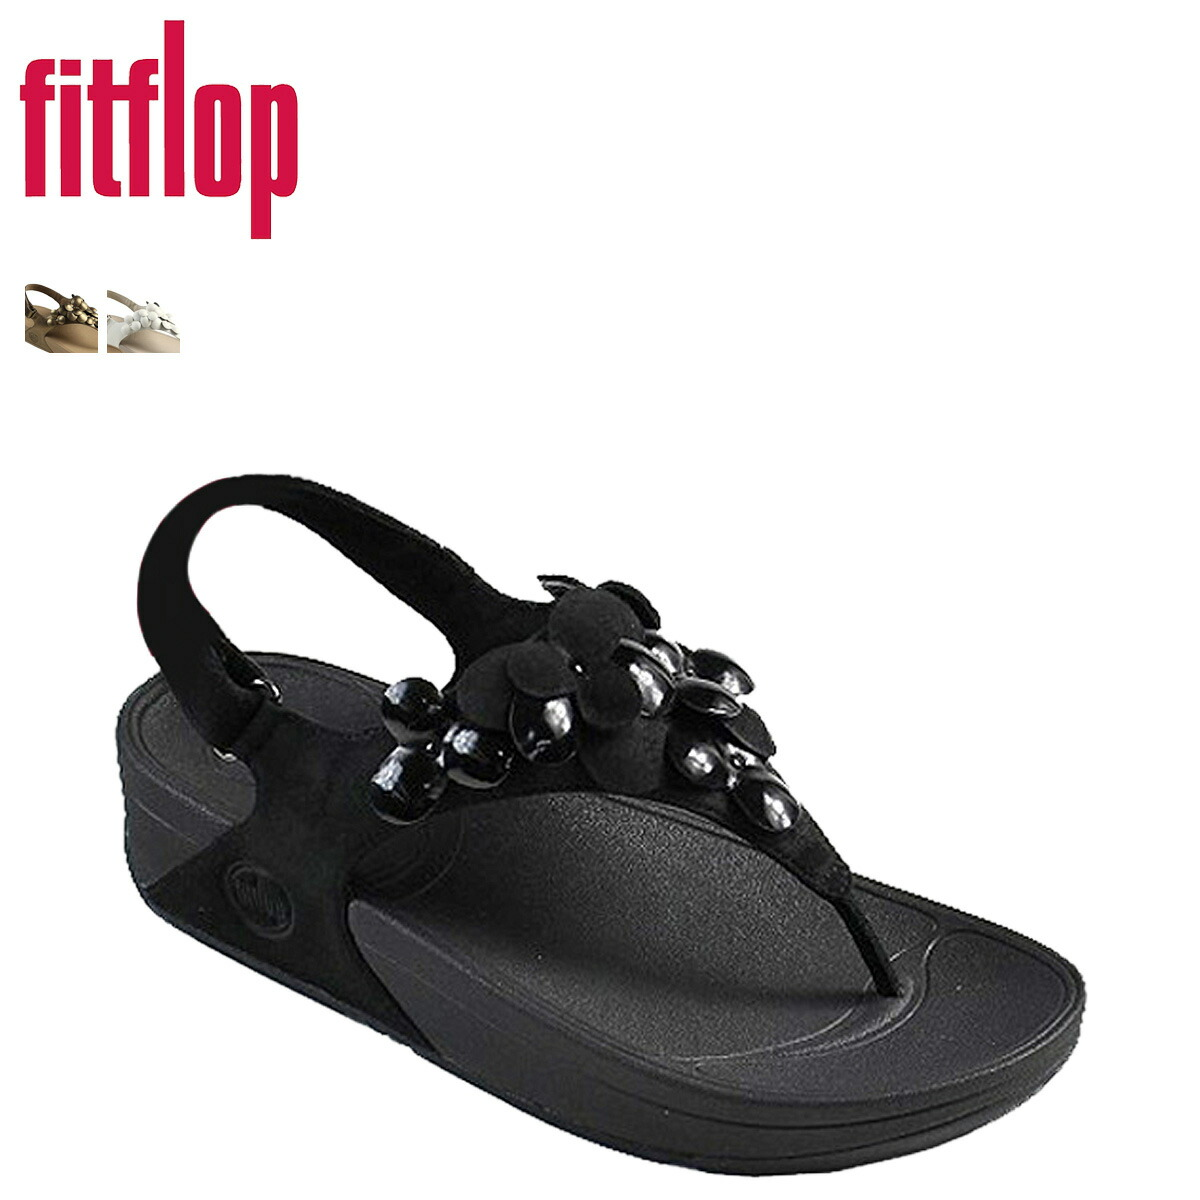 Sneak Online Shop Fitting Flop Fitflop Sandals 4 Color